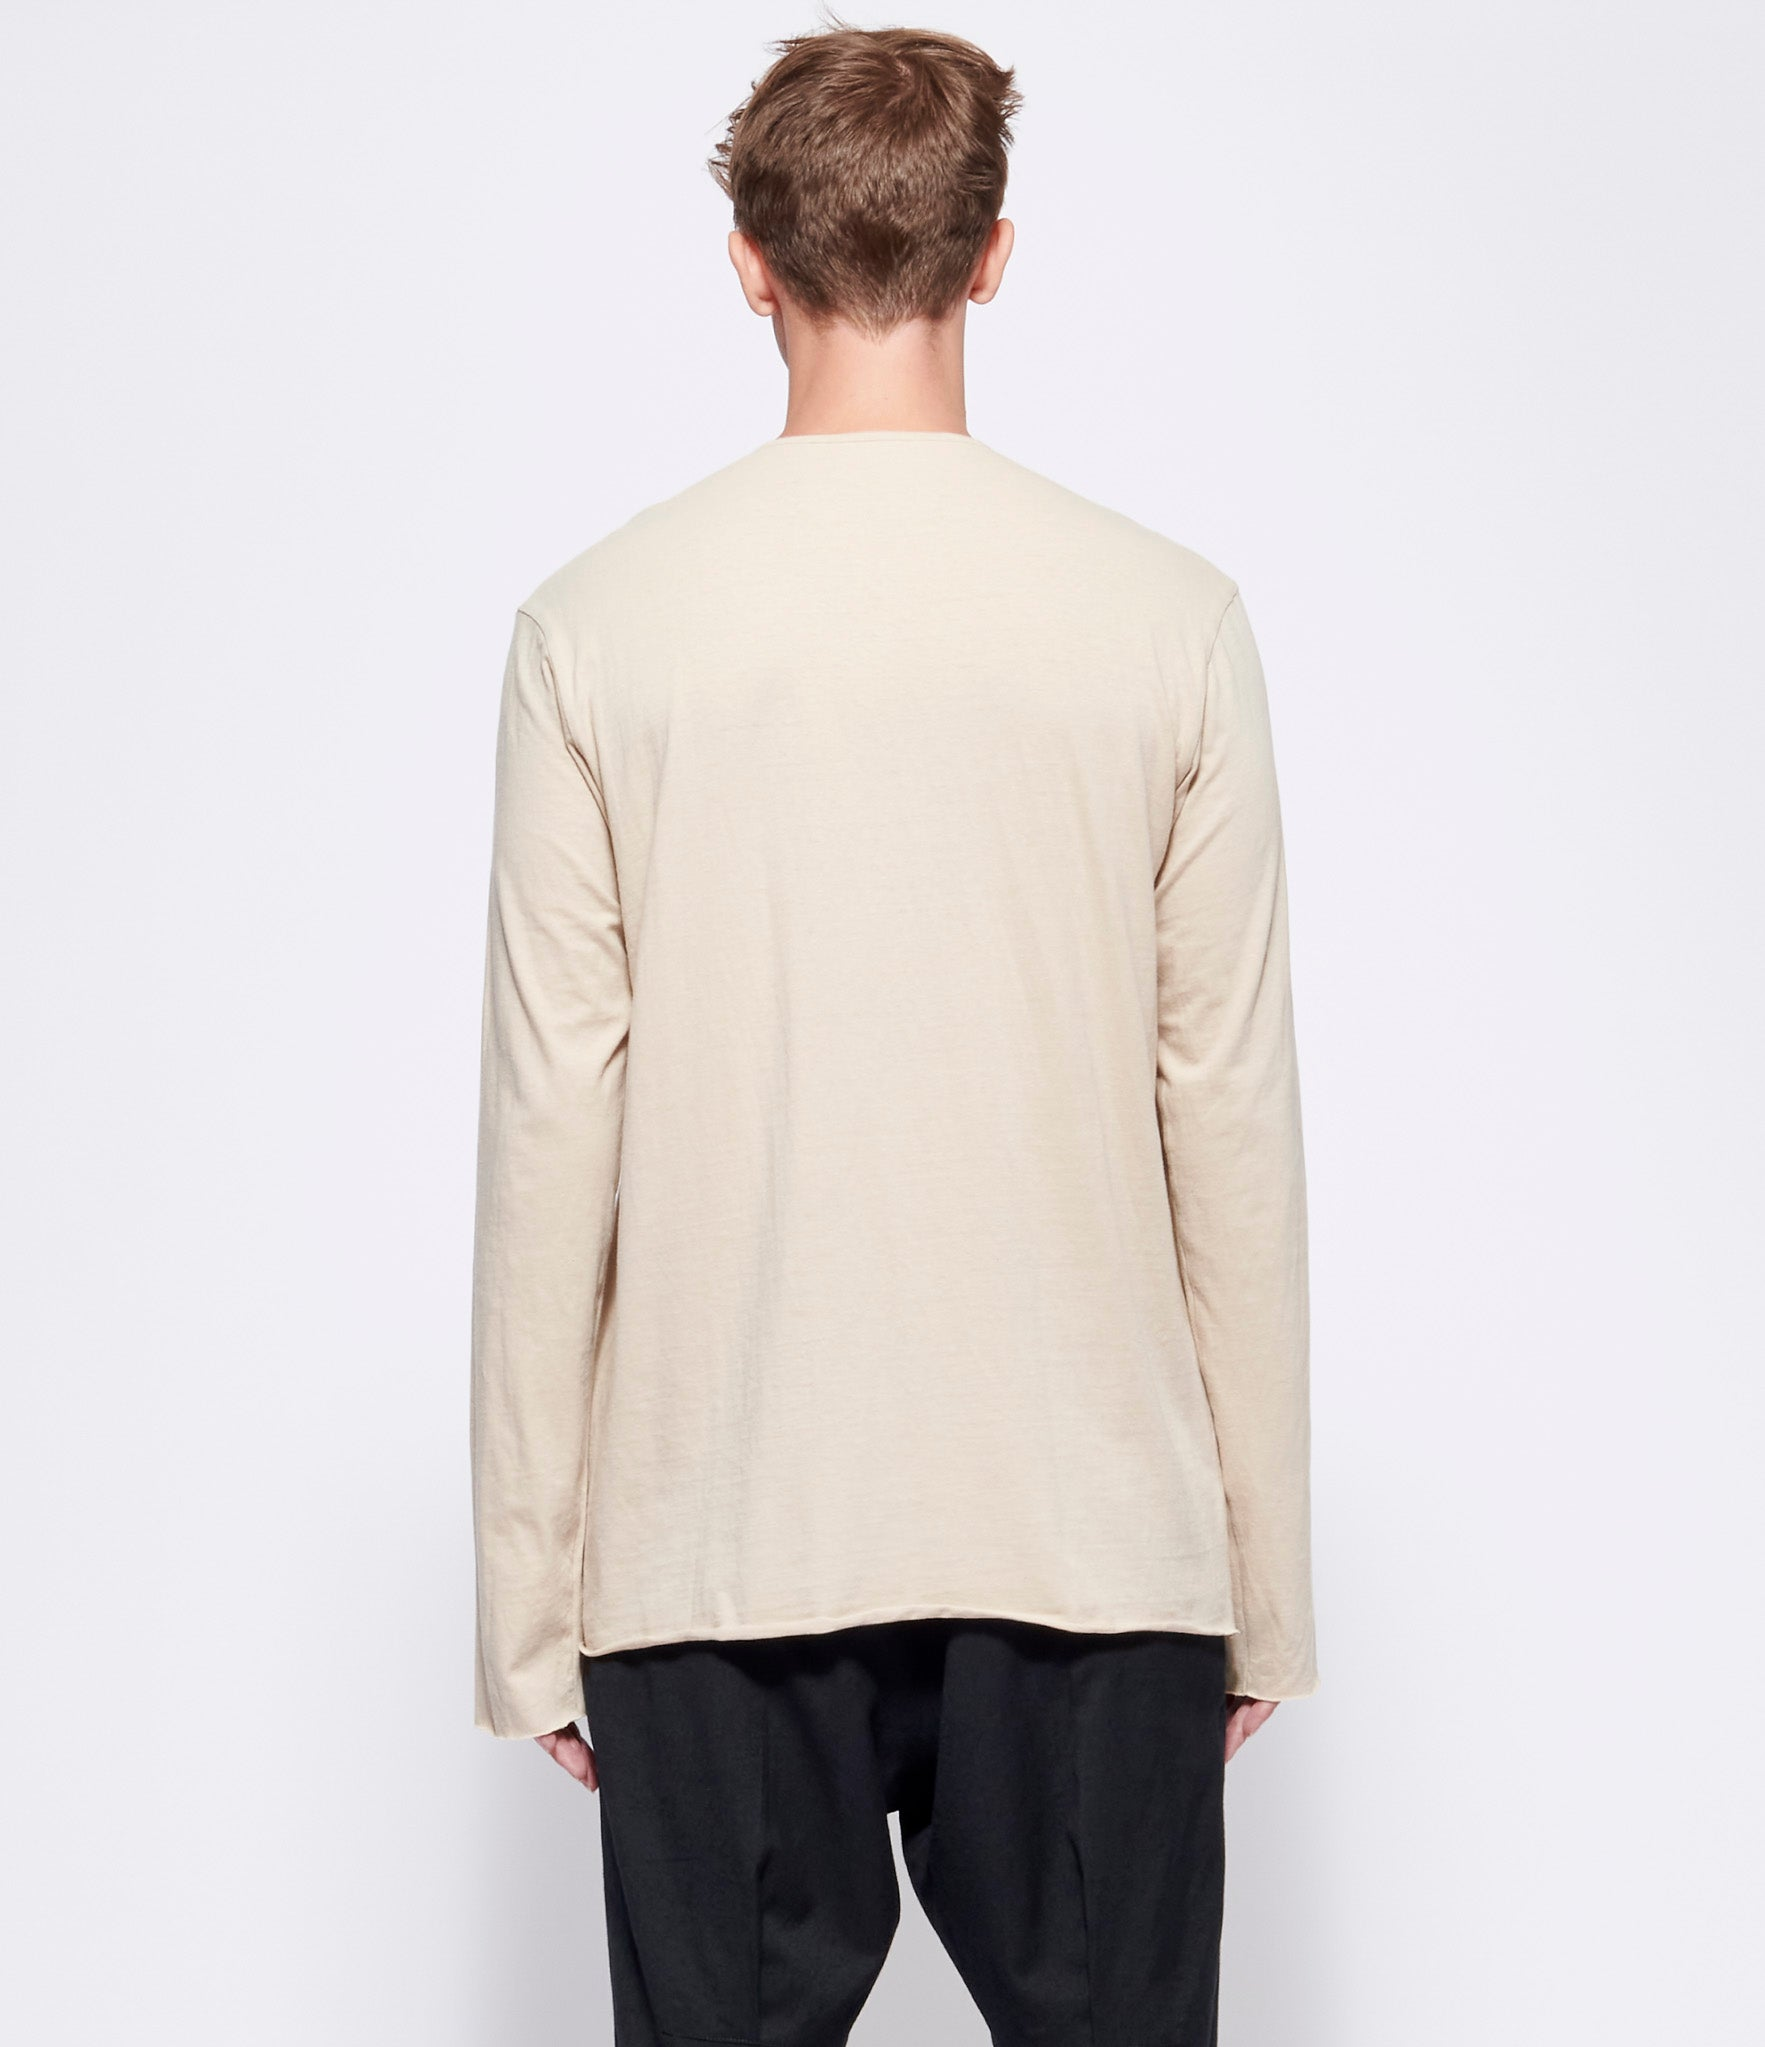 Ziggy Chen Ivory Cotton T-Shirt